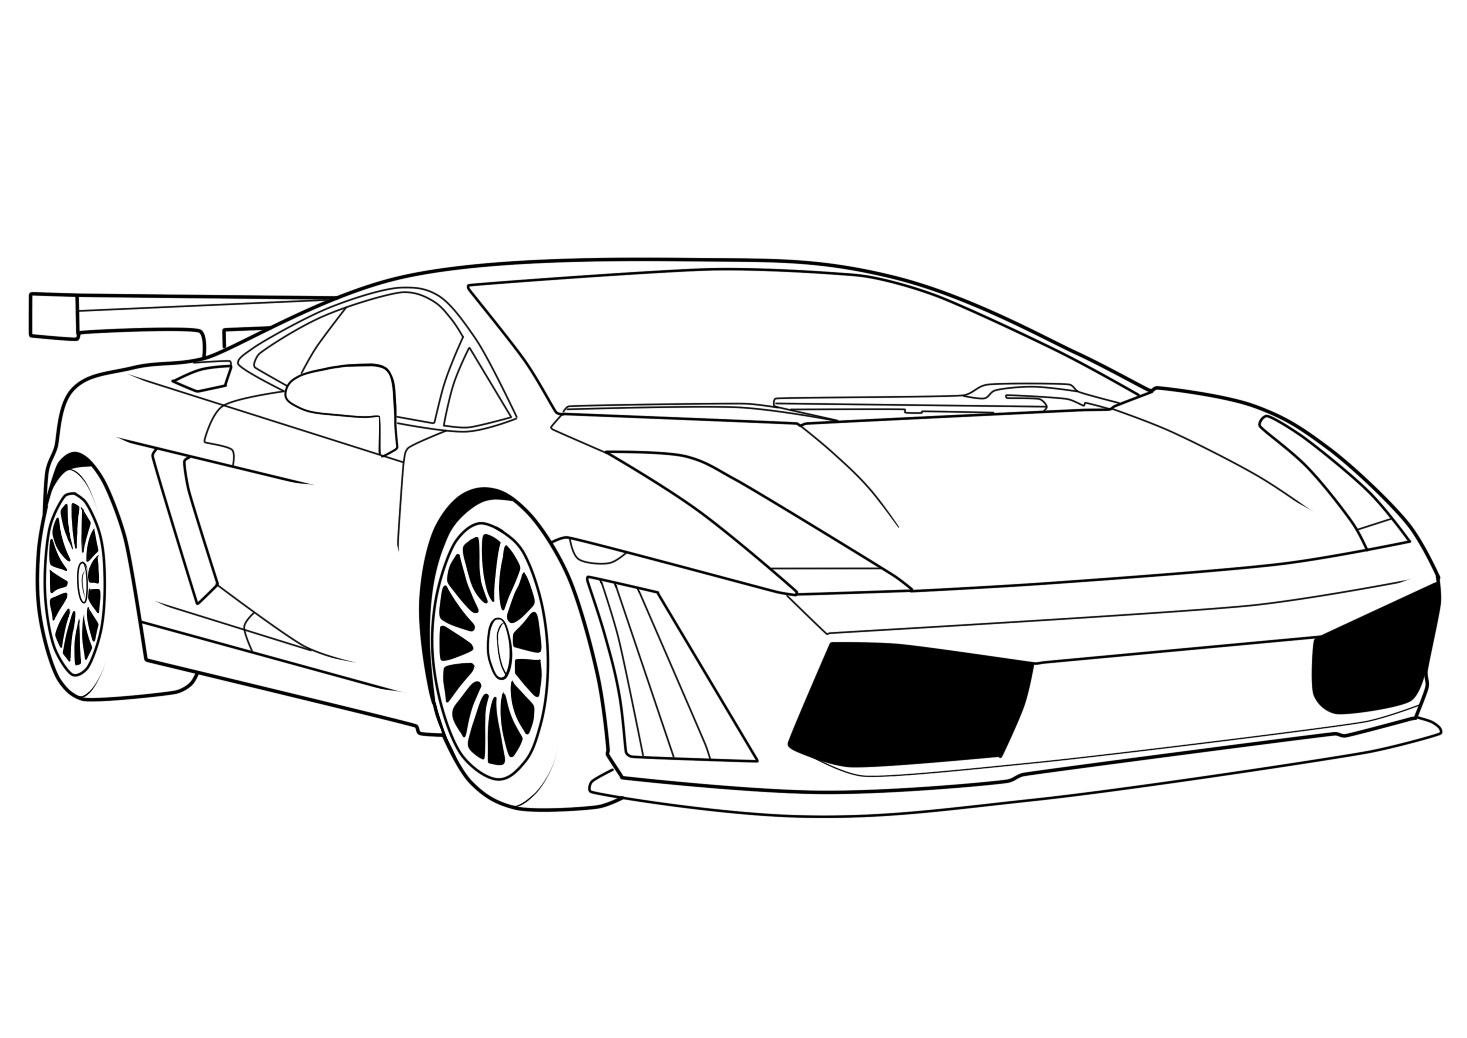 printable pictures of cars to color muscle car coloring pages to download and print for free color pictures printable to of cars